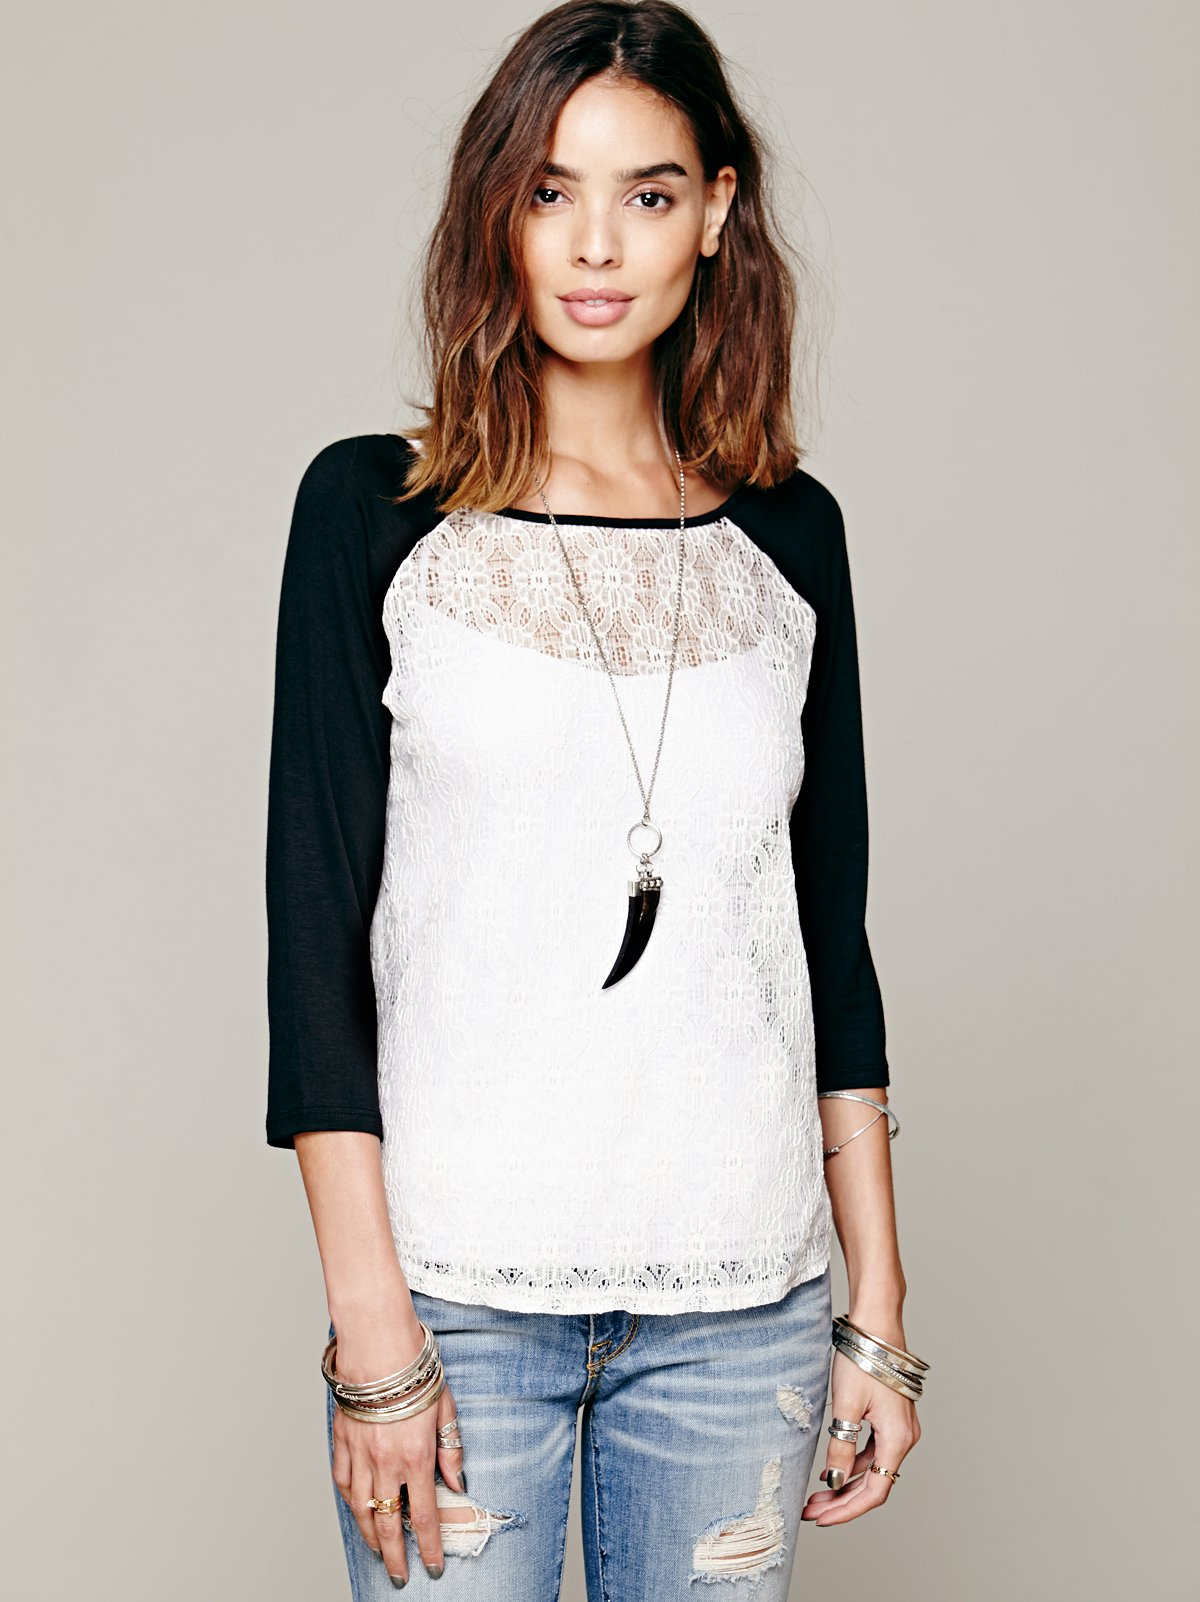 Lace Baseball 3/4 Sleeve Top